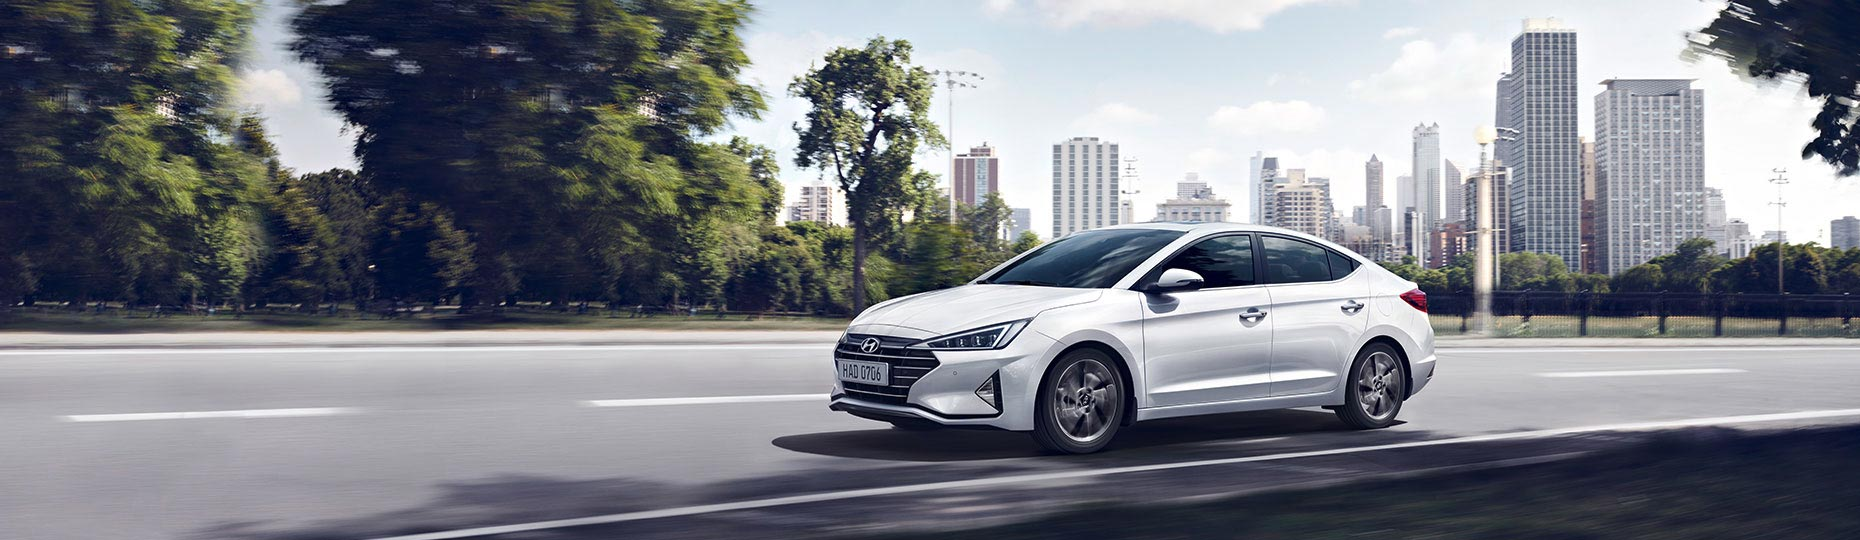 elantra 2019 on road side